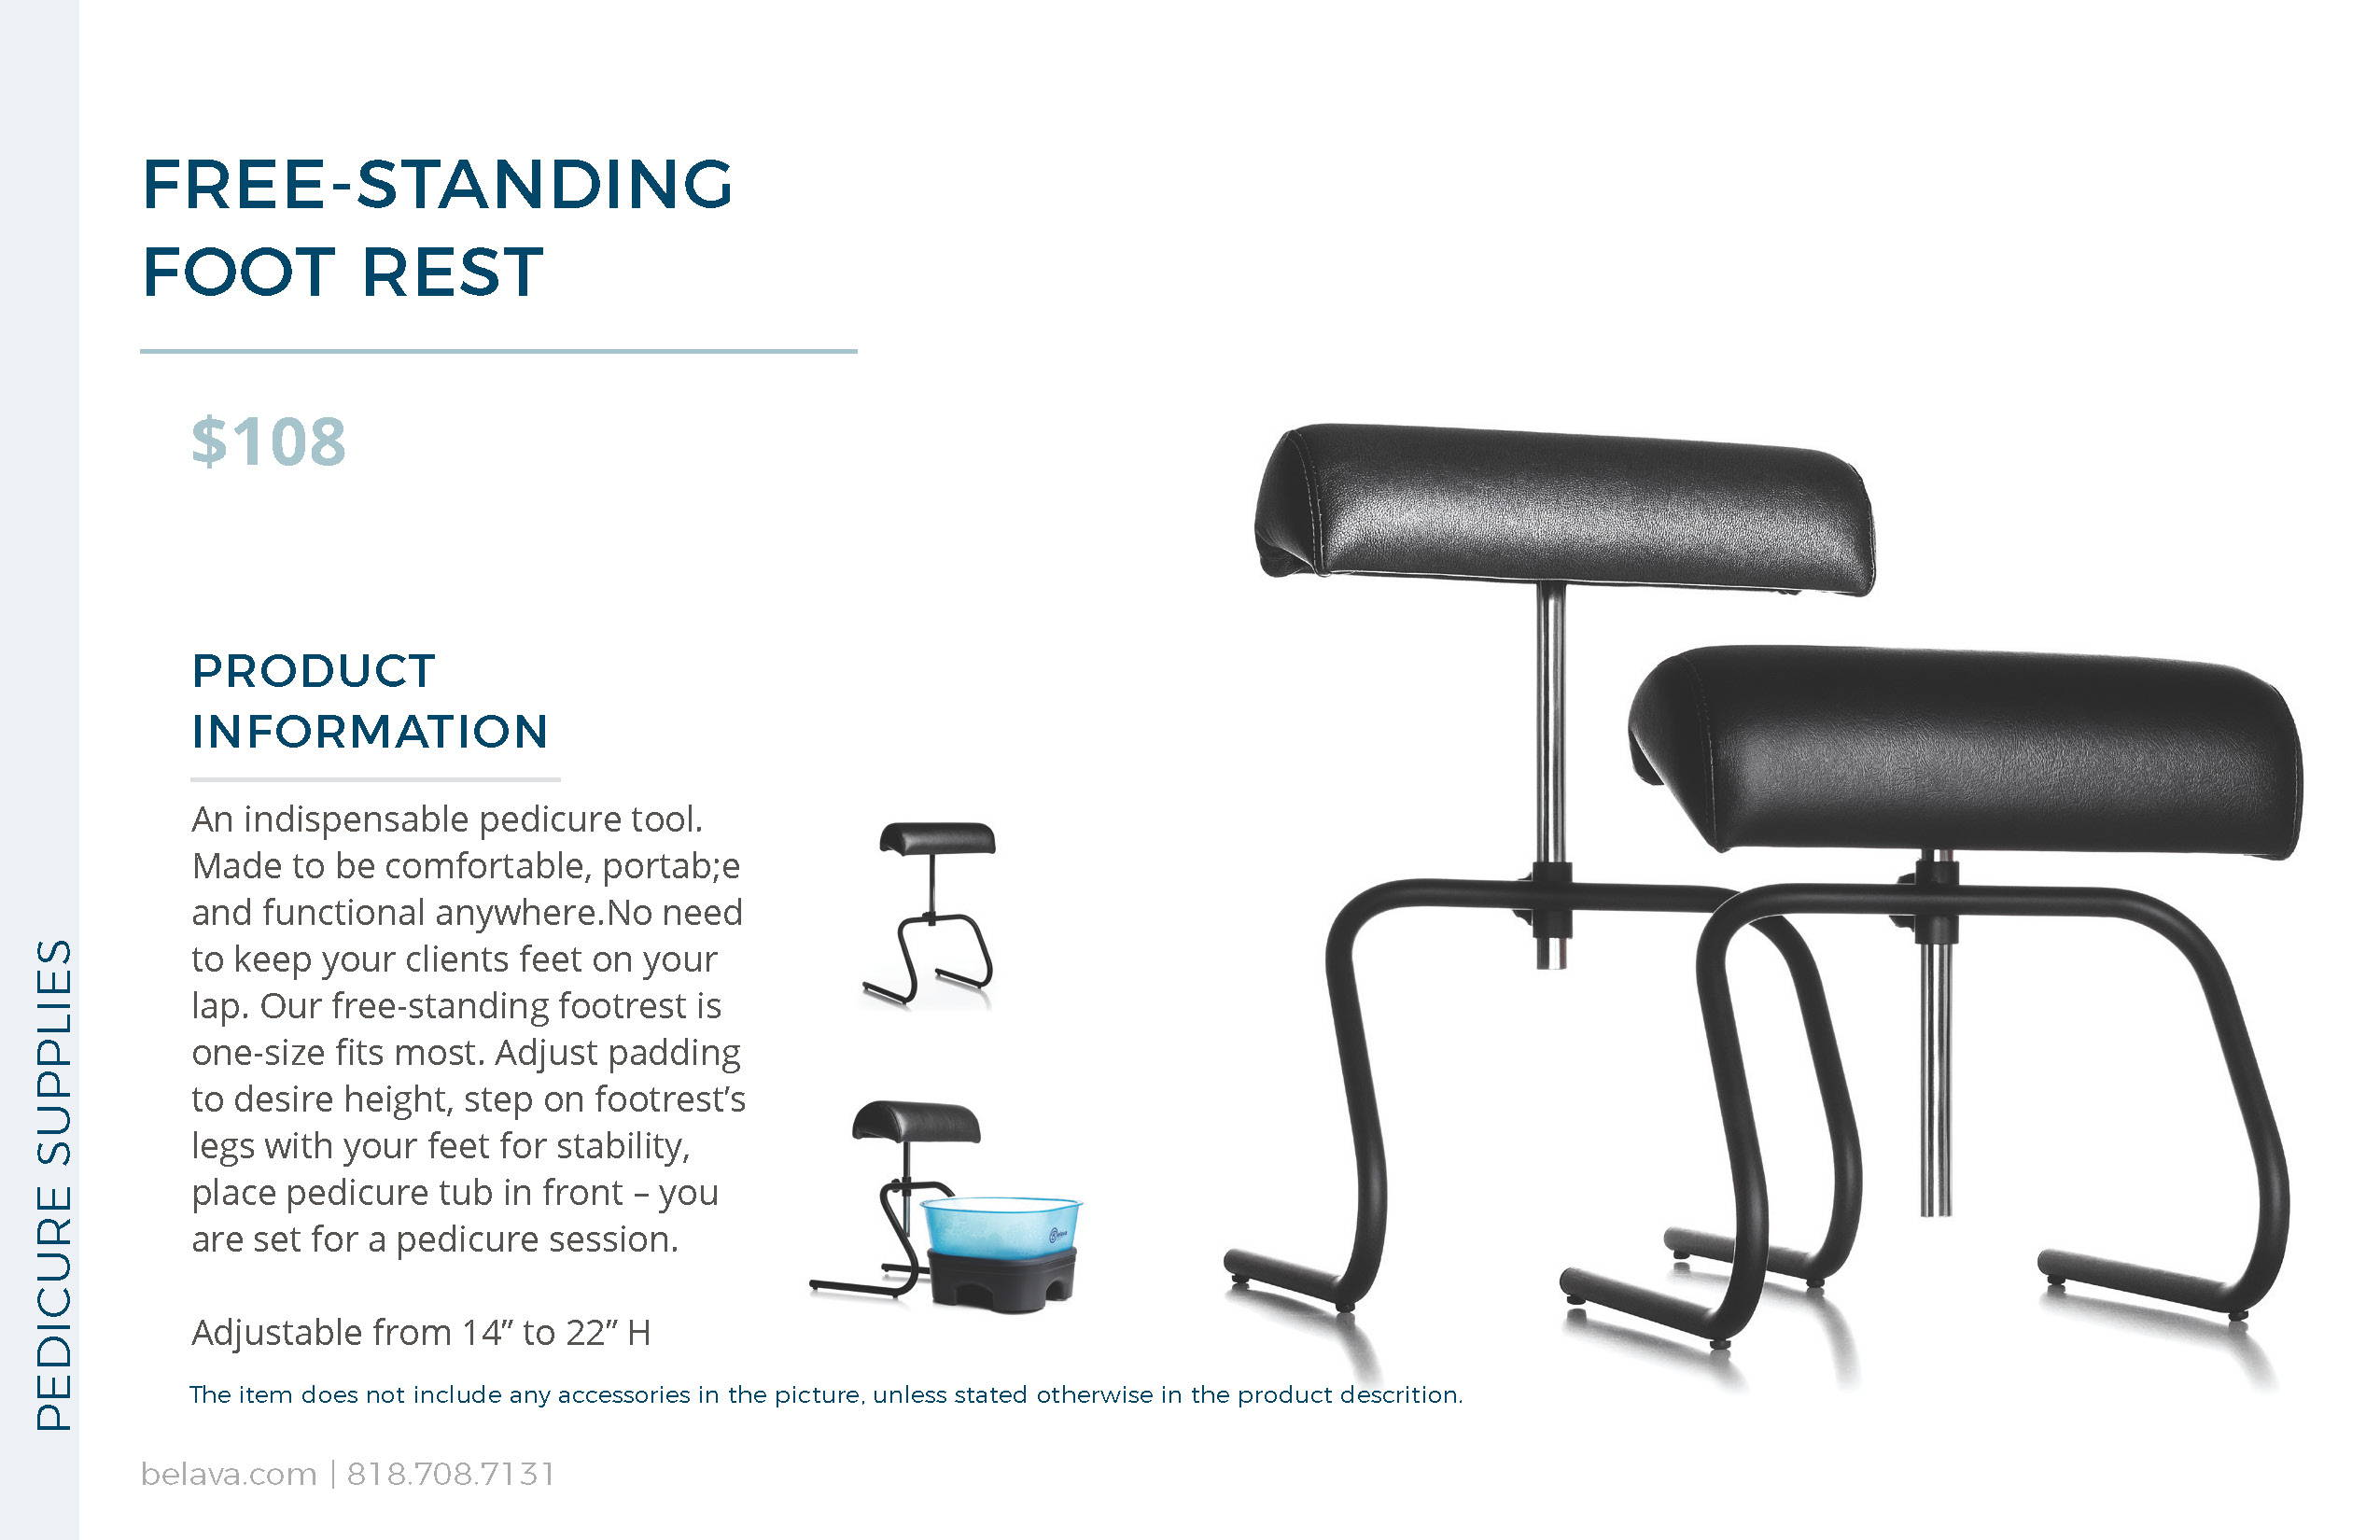 Free-Standing Foot Rest by Belava